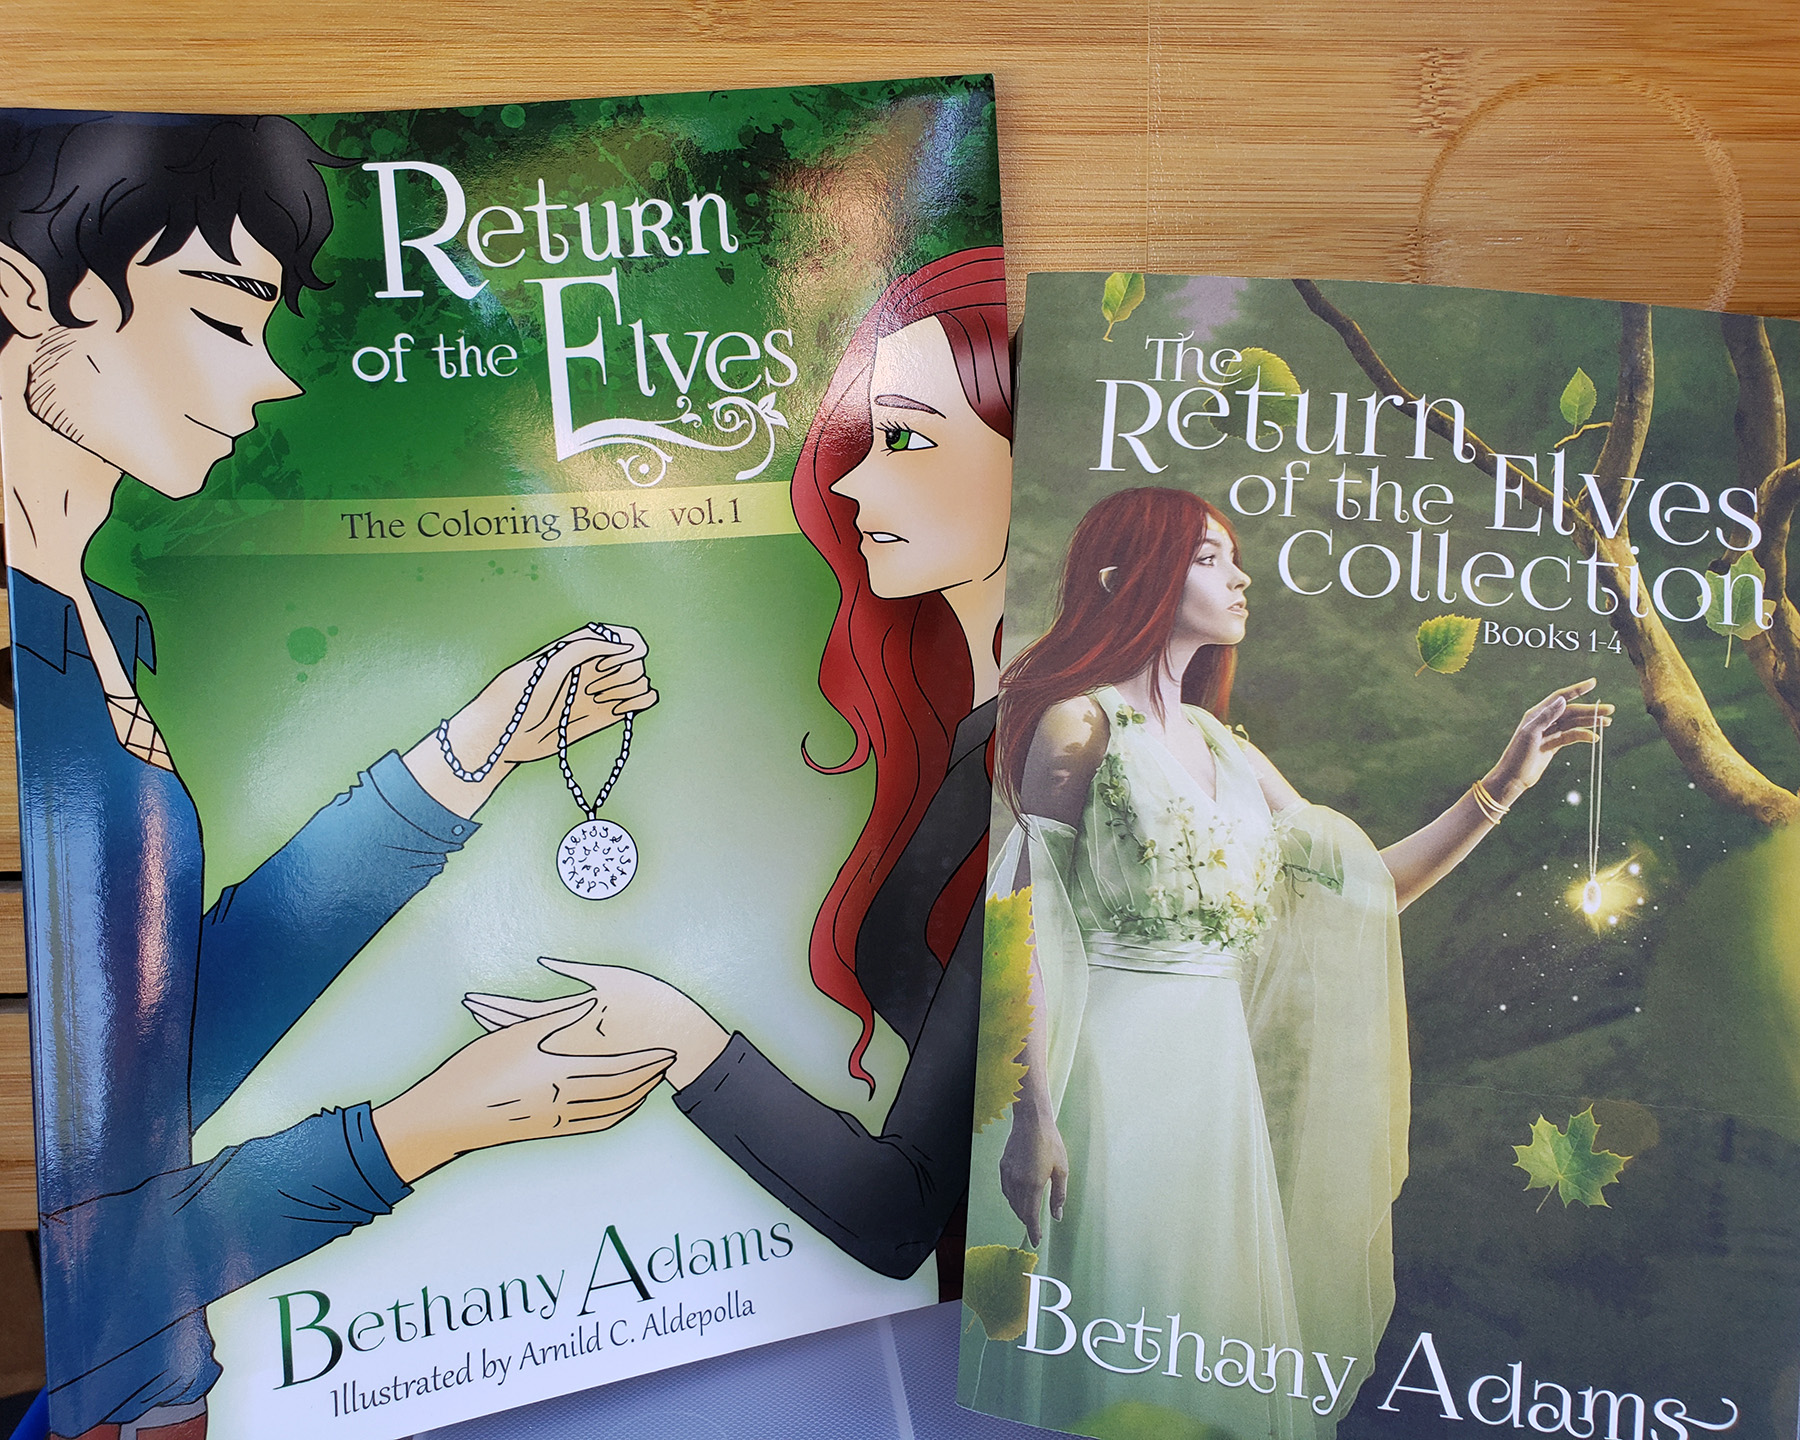 The two lovely books up for grabs.